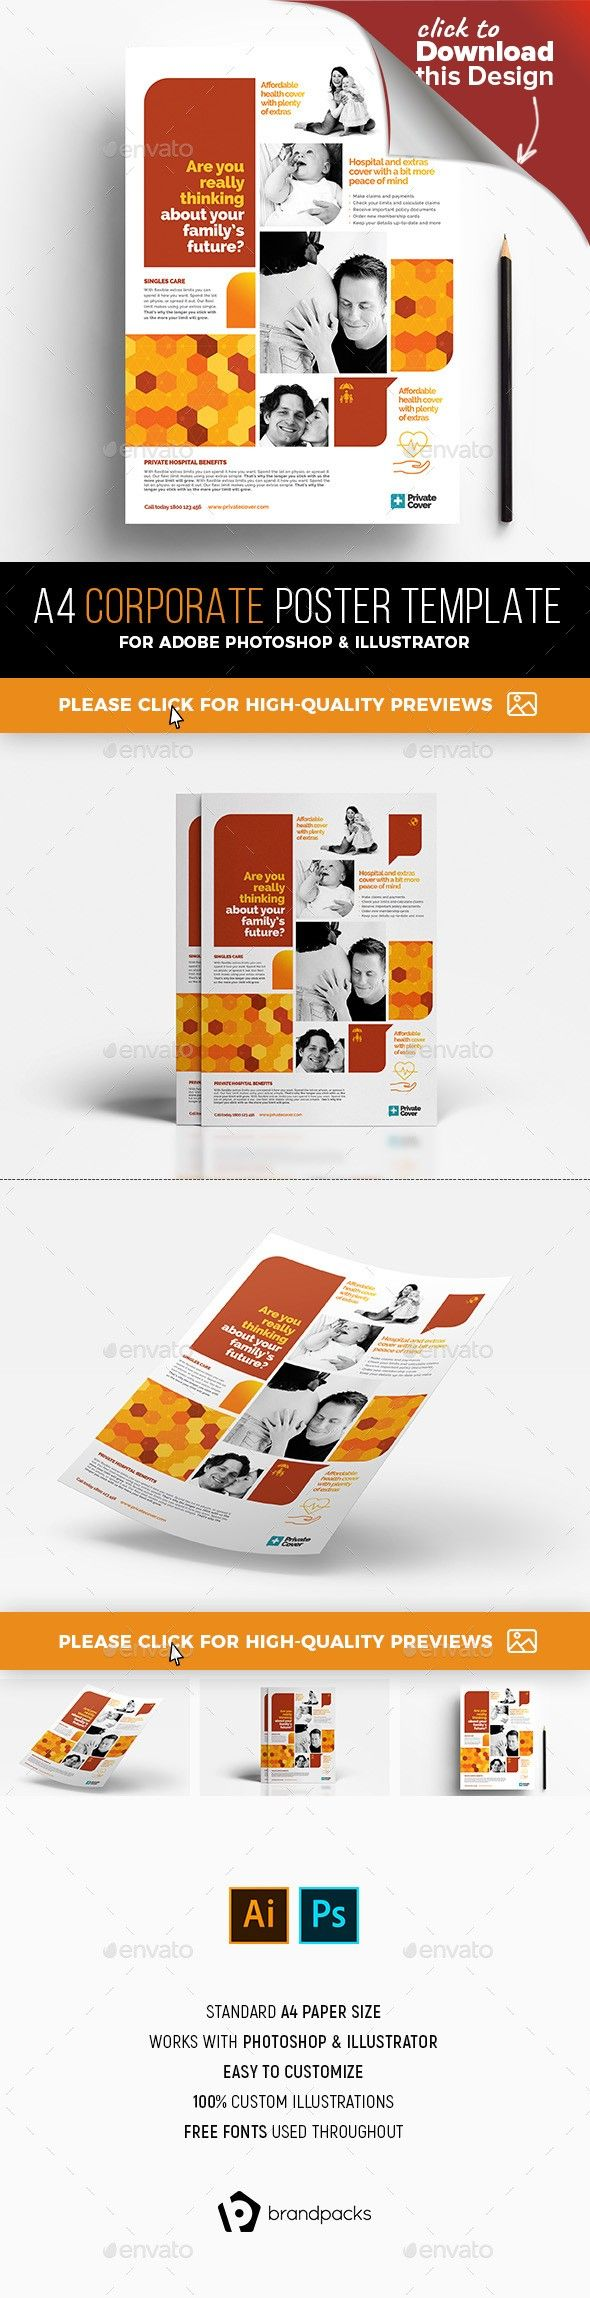 A4 Corporate Poster Template | Flyer layout, Template and Psd templates